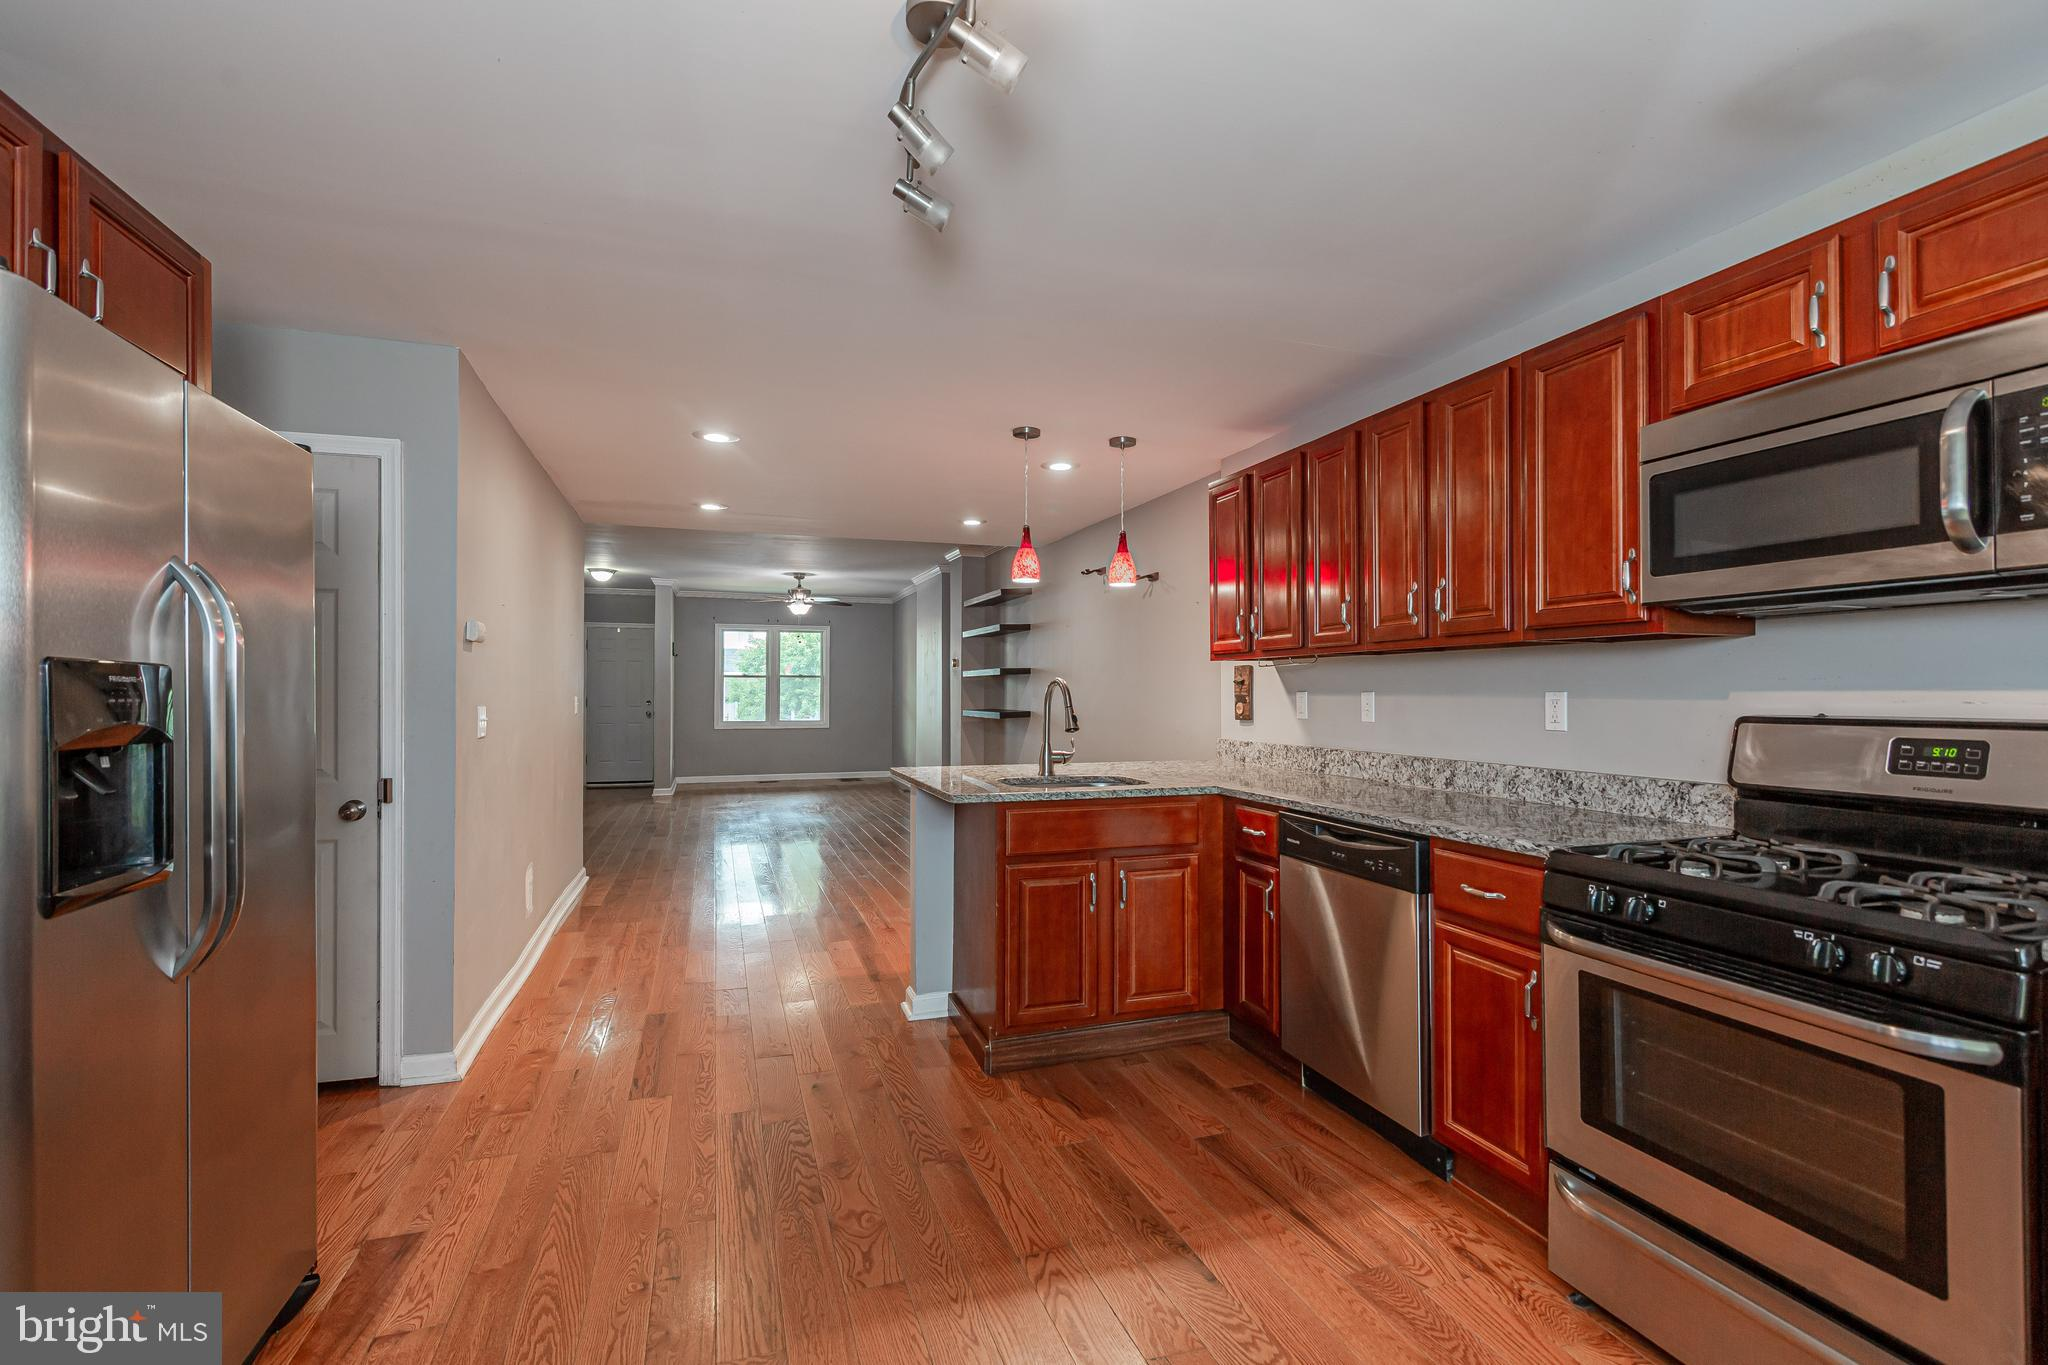 This 3 bedroom 2 and a half bathroom townhouse is centrally located close to schools and downtown Ha